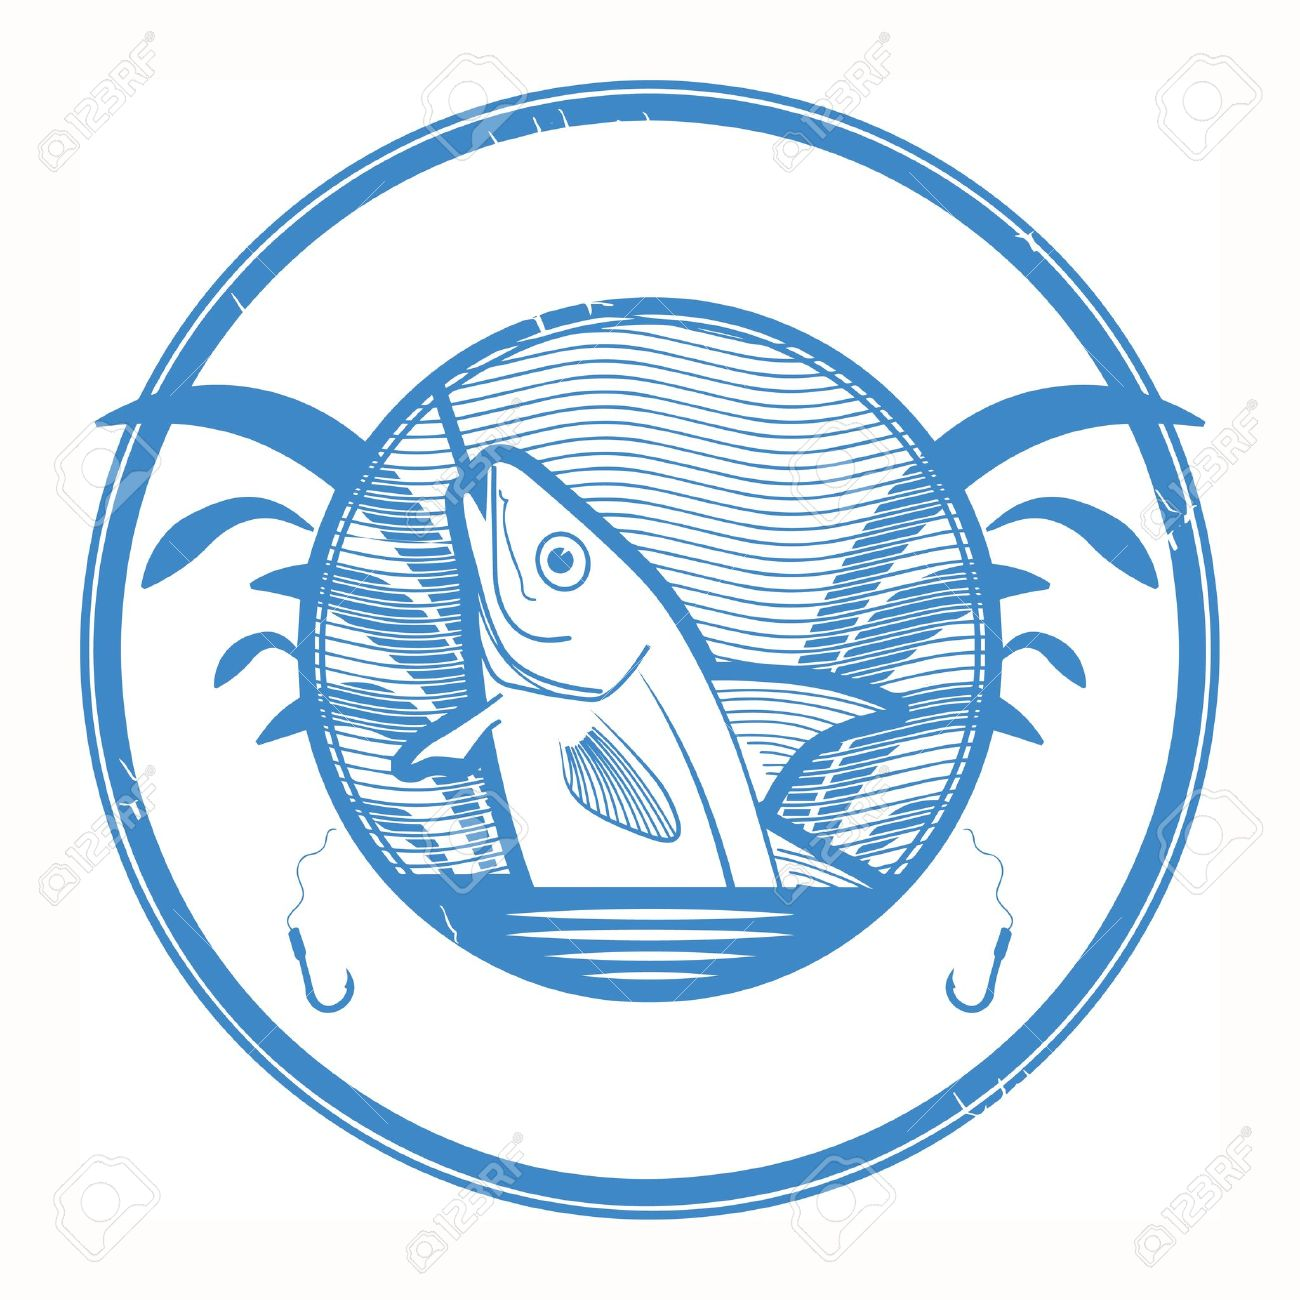 352 Fish Inside Stock Vector Illustration And Royalty Free Fish.